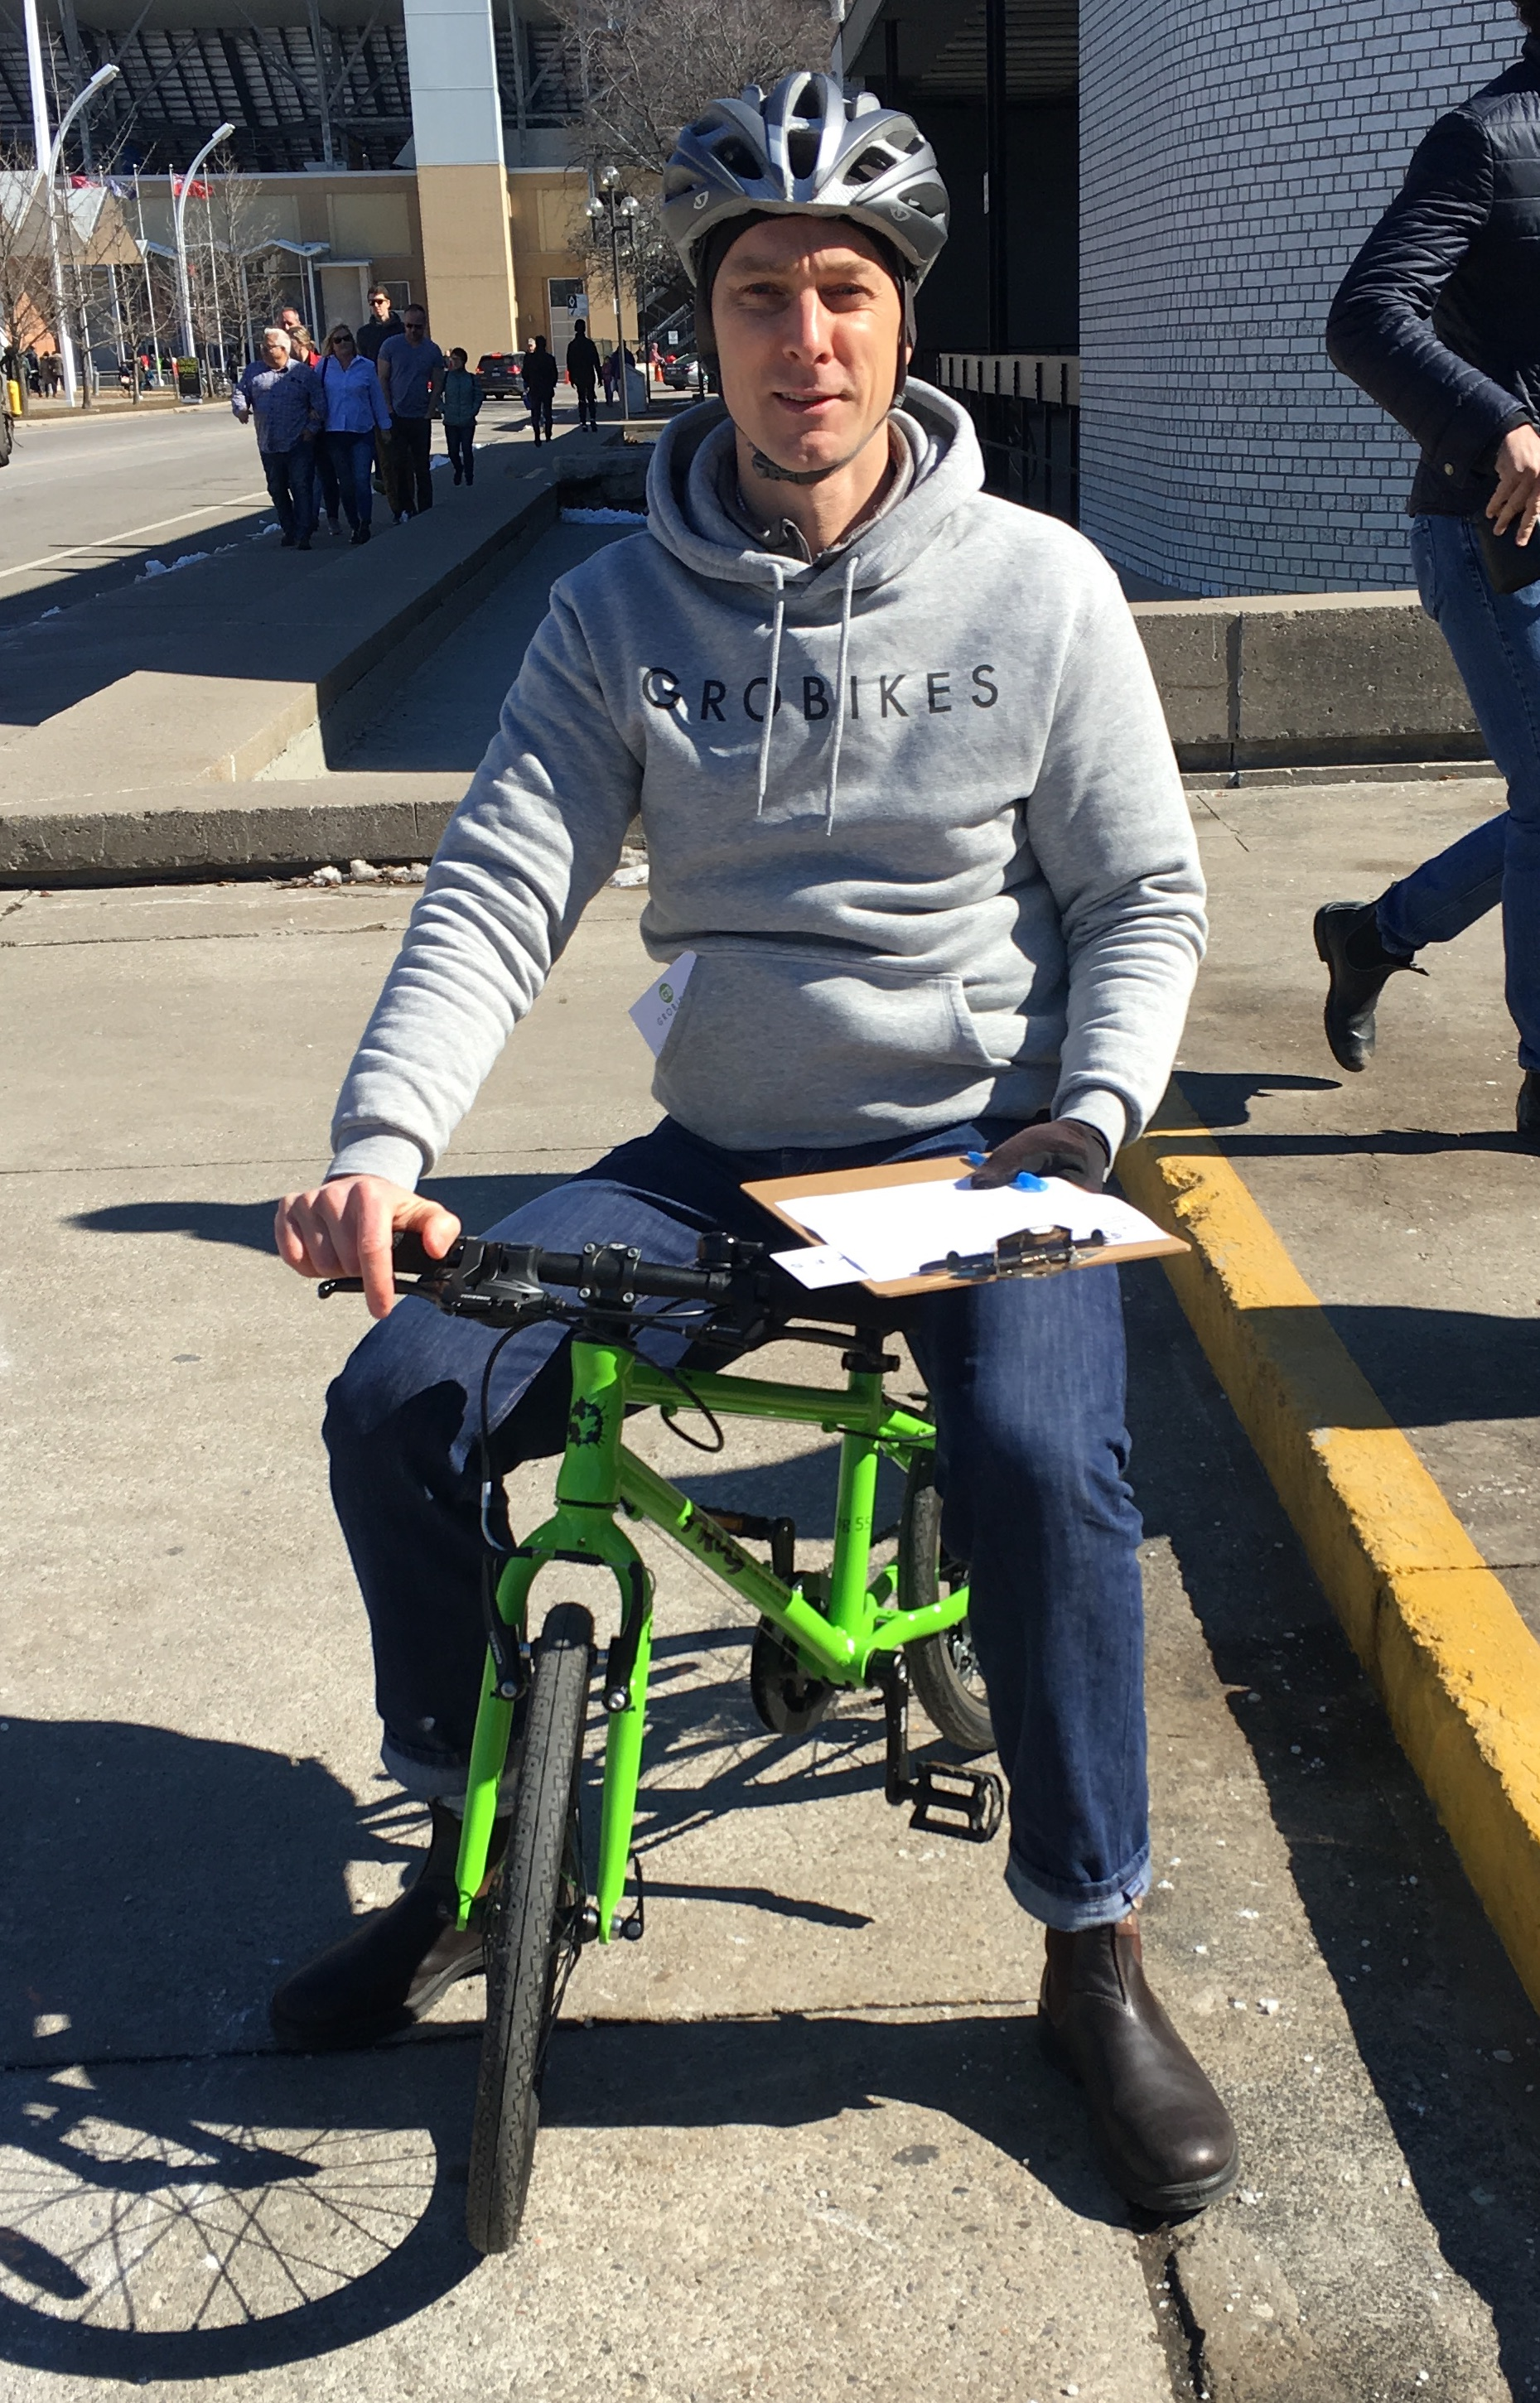 GroBikes' founder asked respondents if this bike was the right size for him or not.